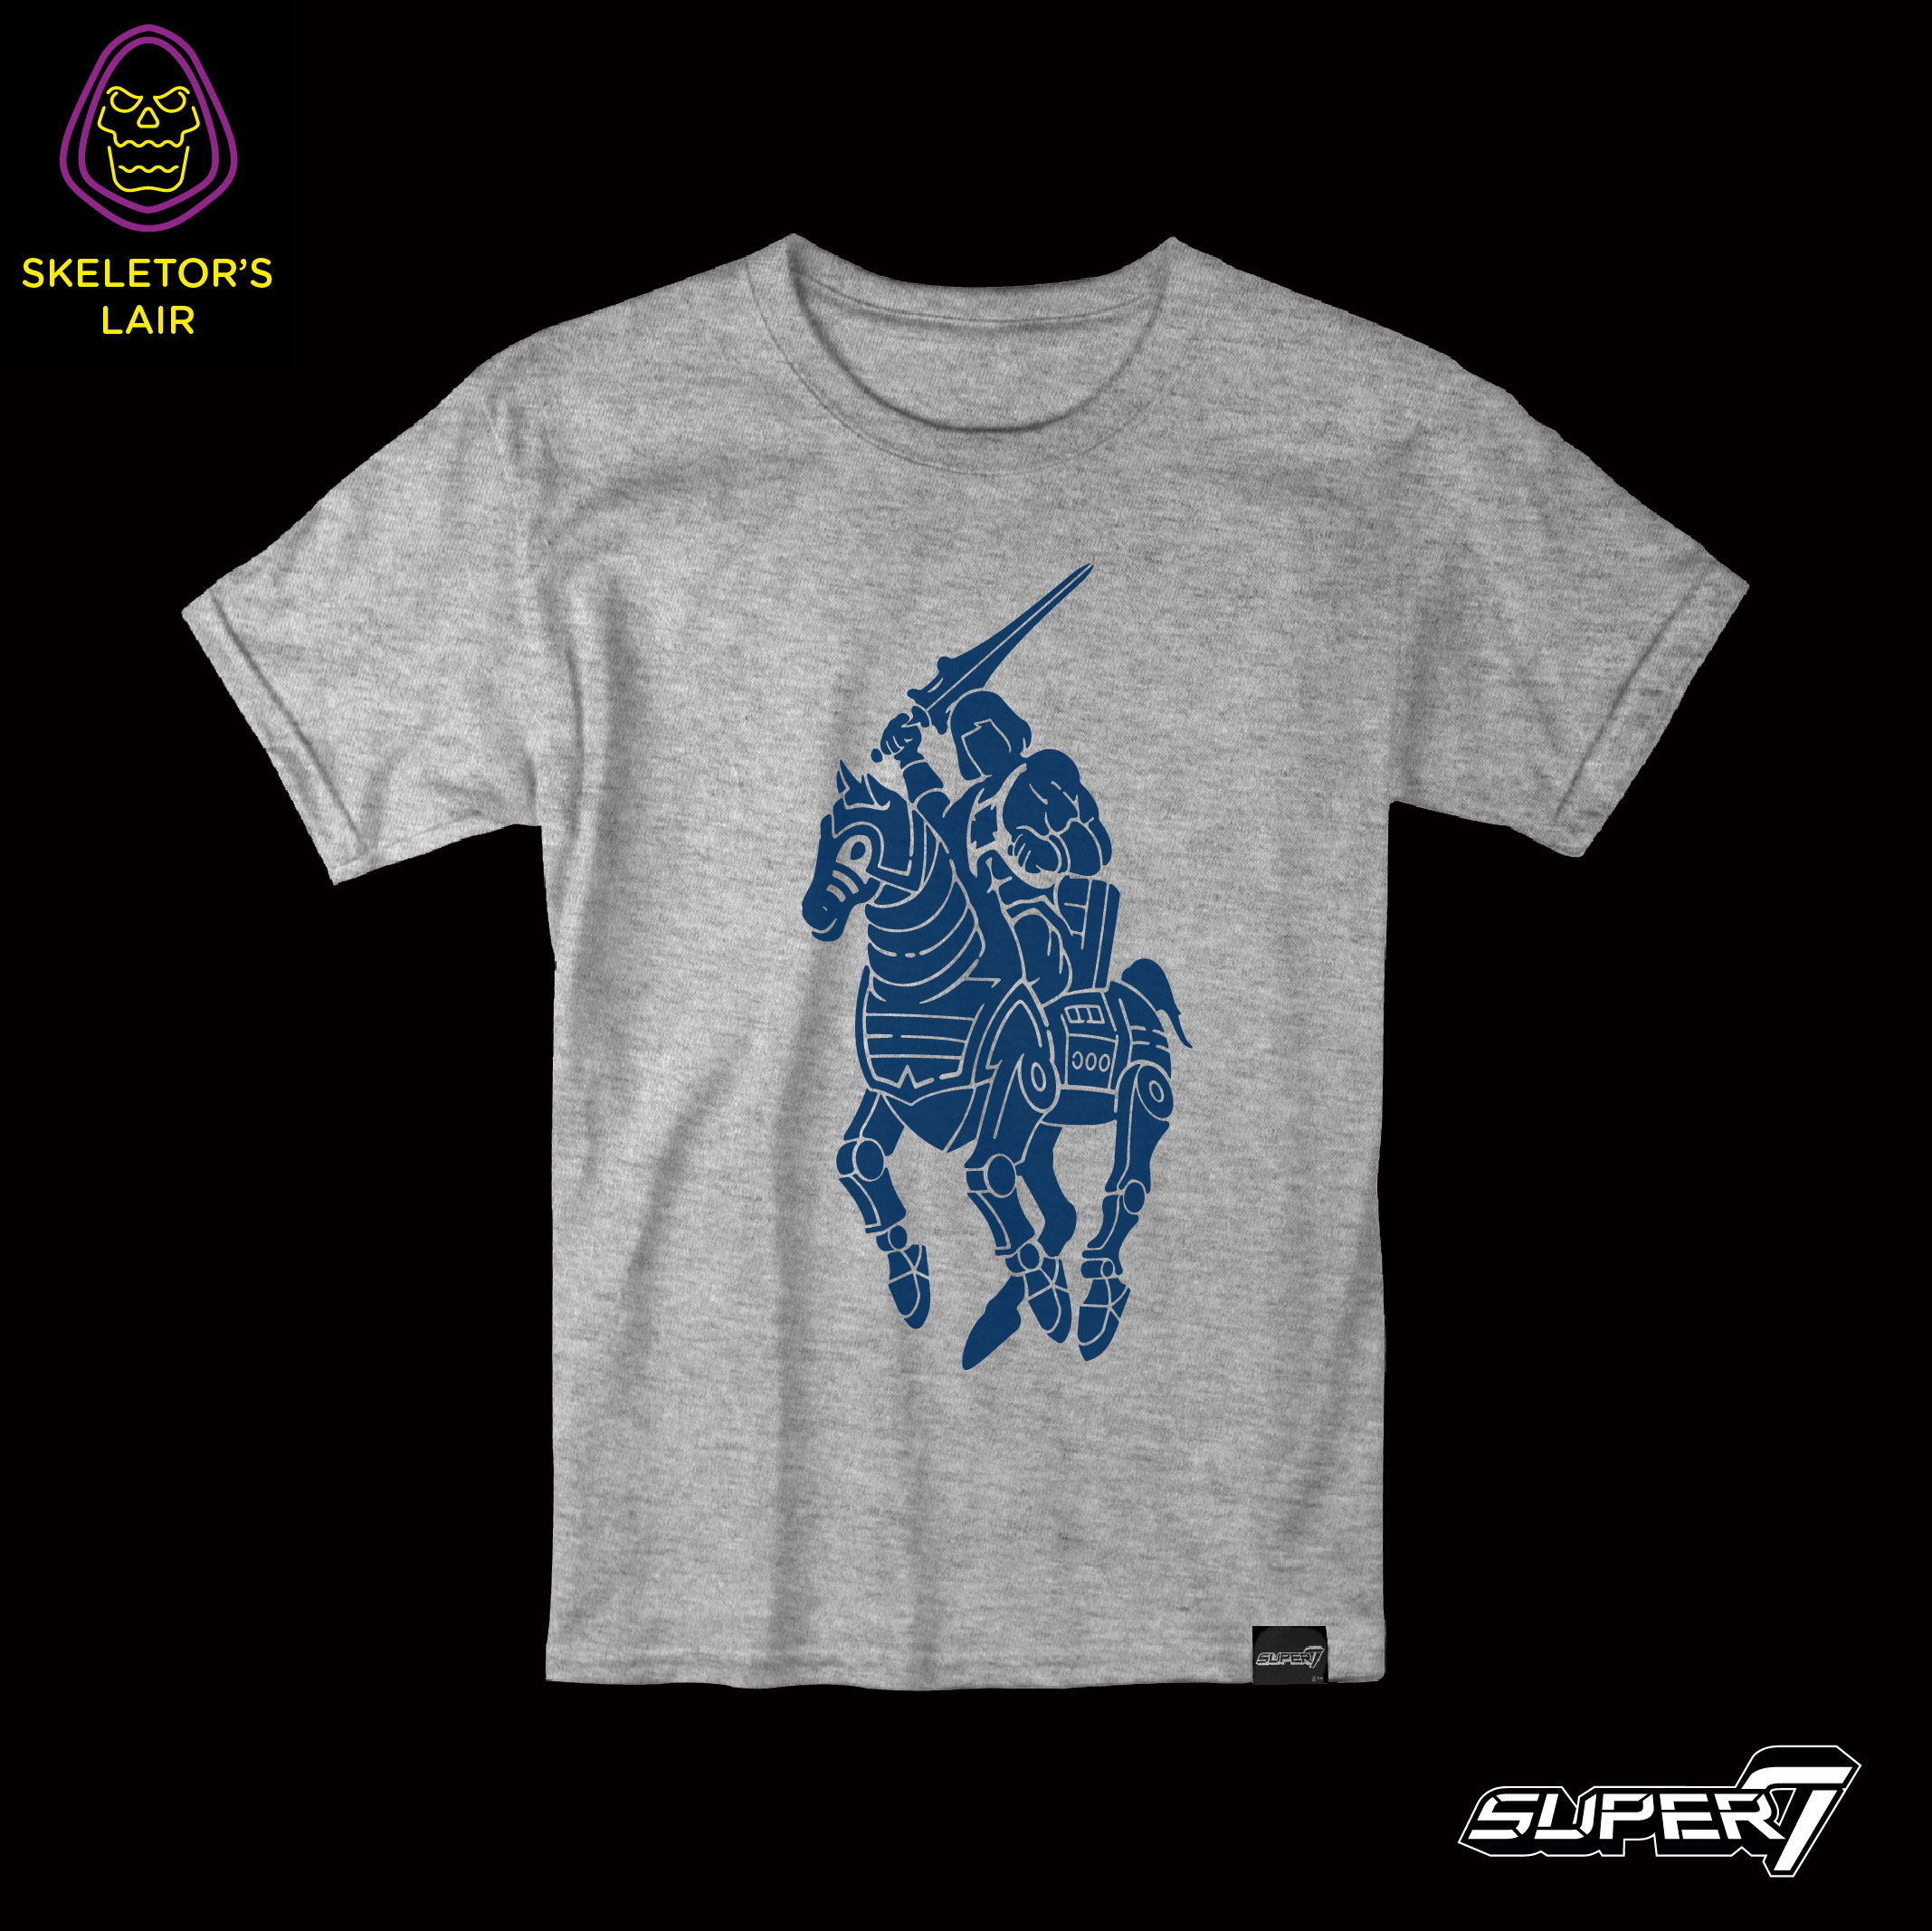 super7-motu-sdcc-2017-shirt-4